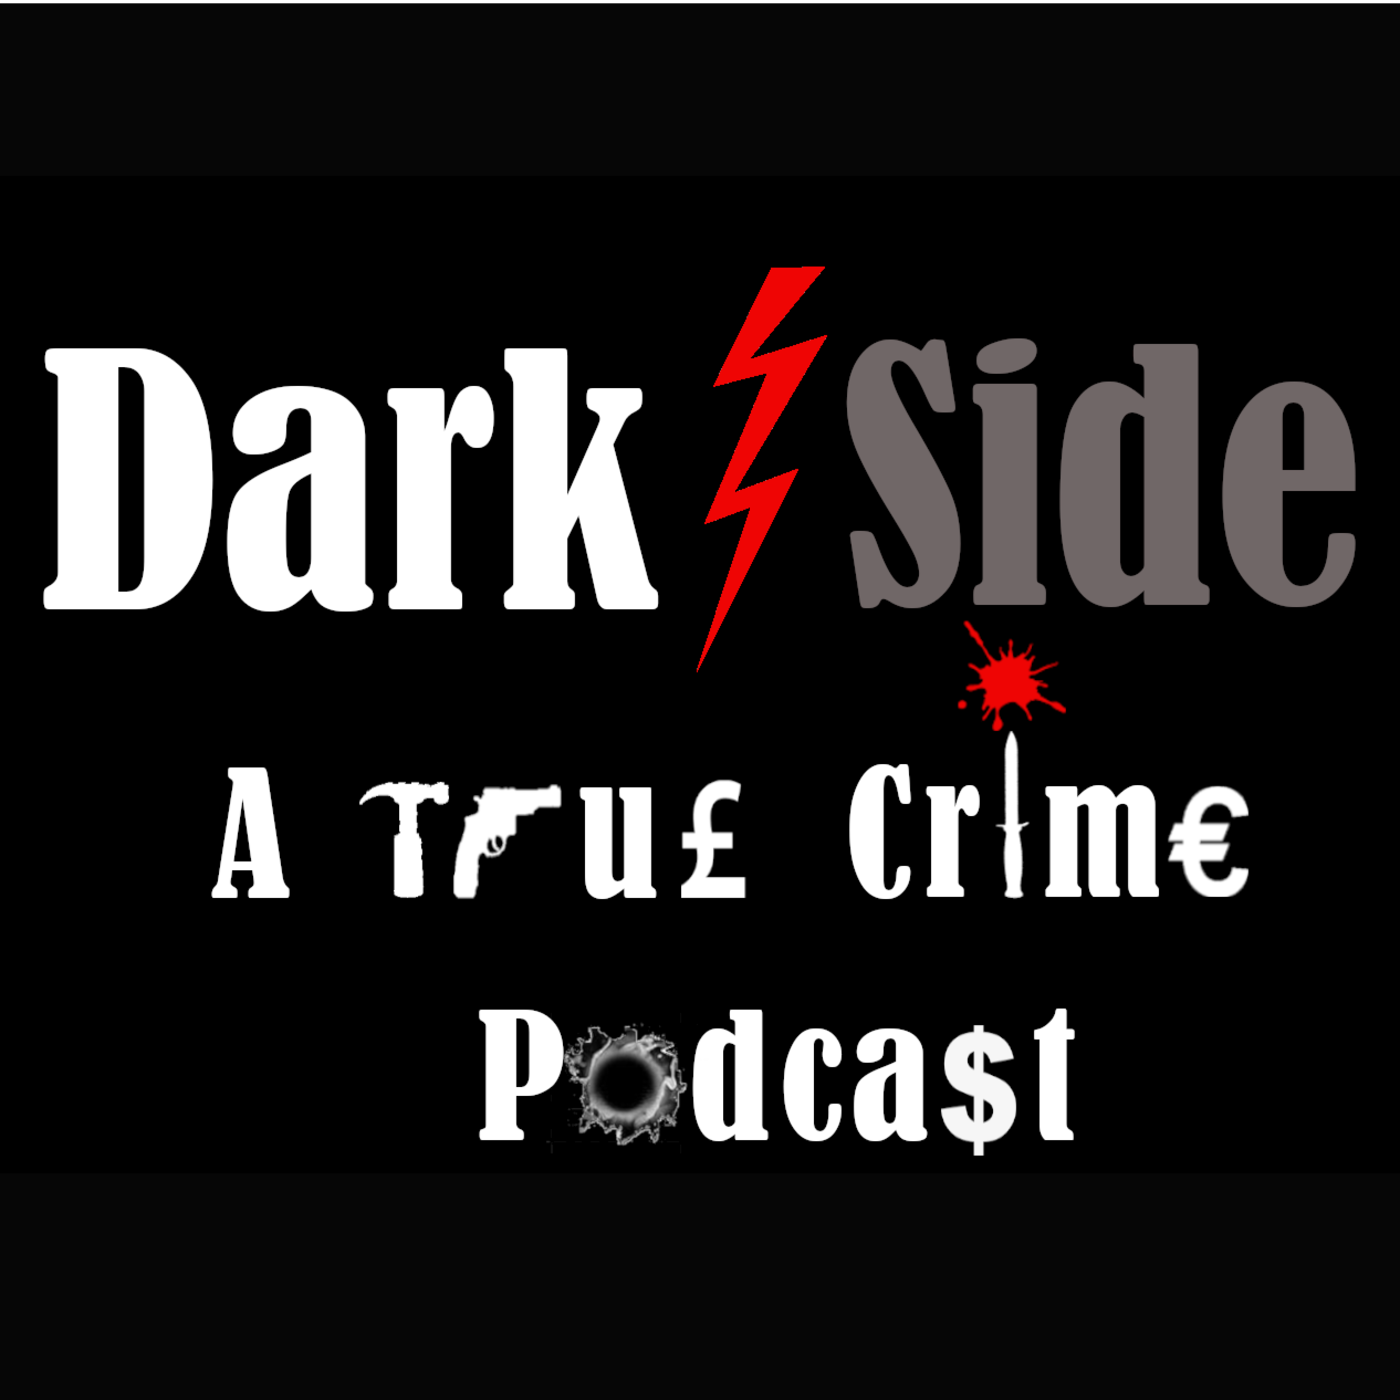 Dark Side Podcast Logo